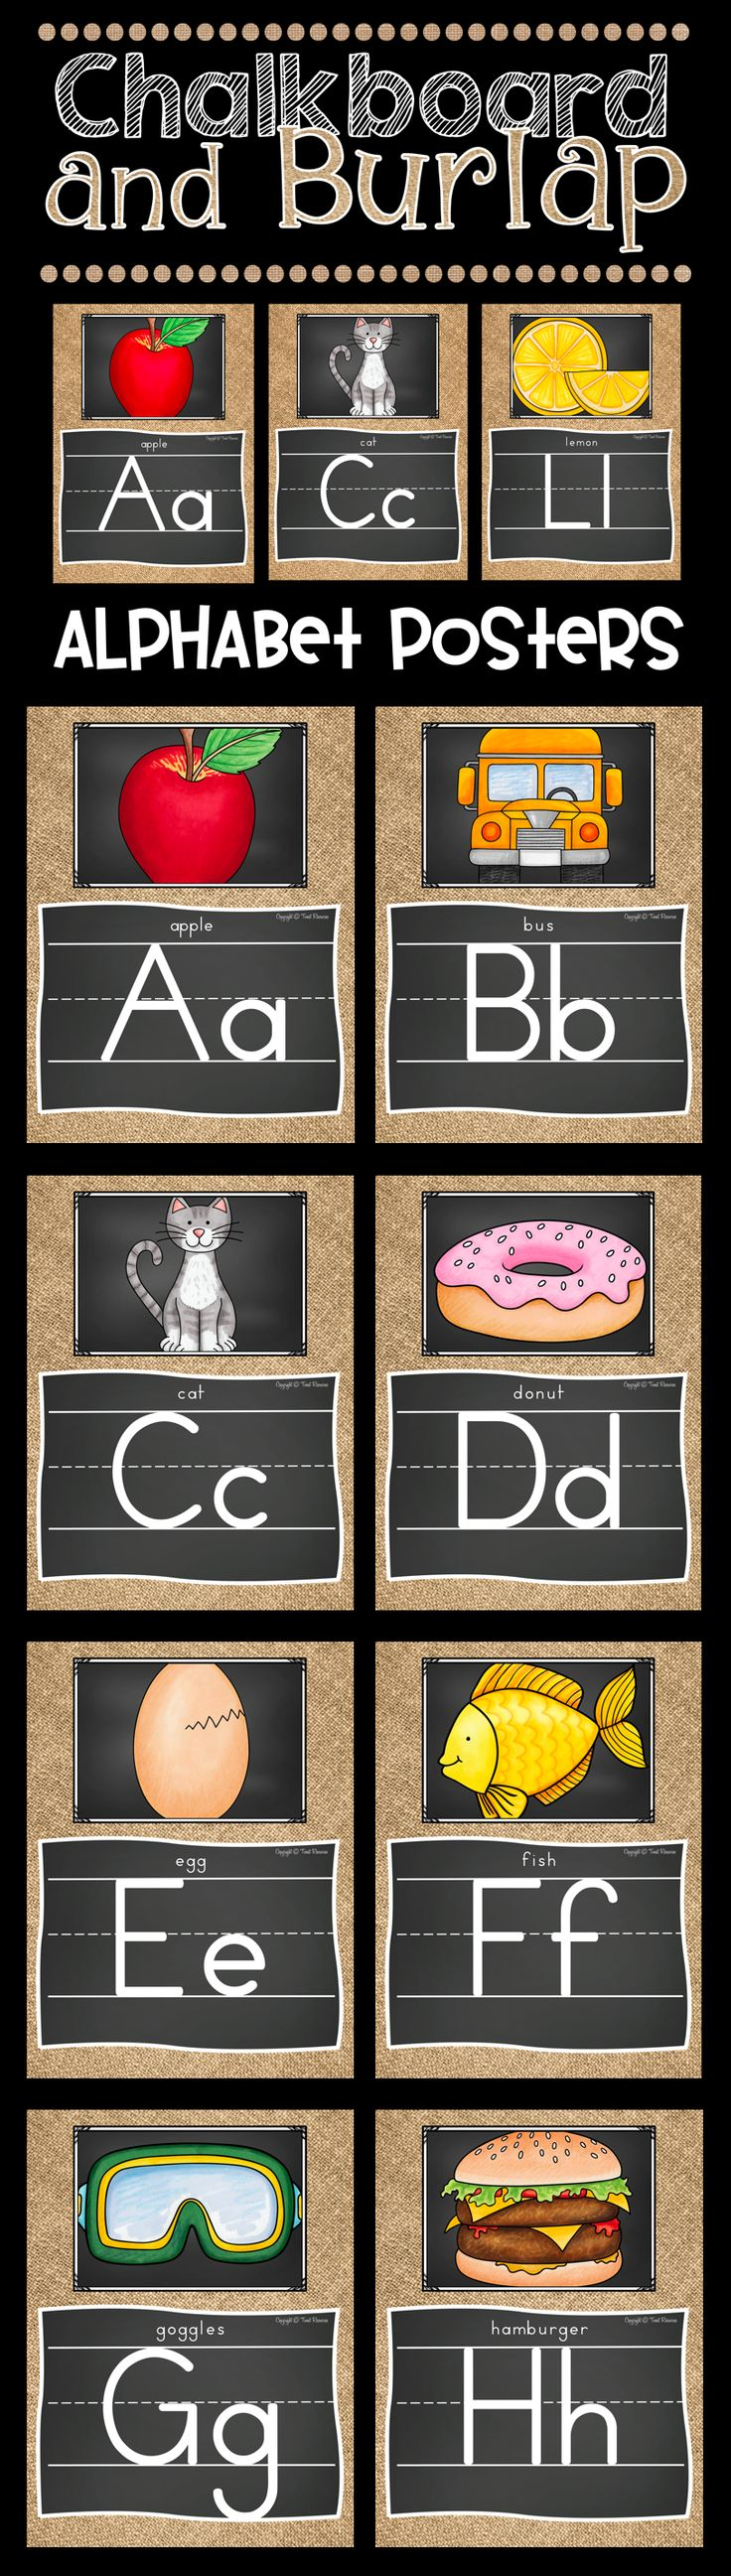 How adorable are these chalkboard and burlap alphabet posters? I just love the shabby chic decor style! I can't wait to decorate my classroom this year!!!!!